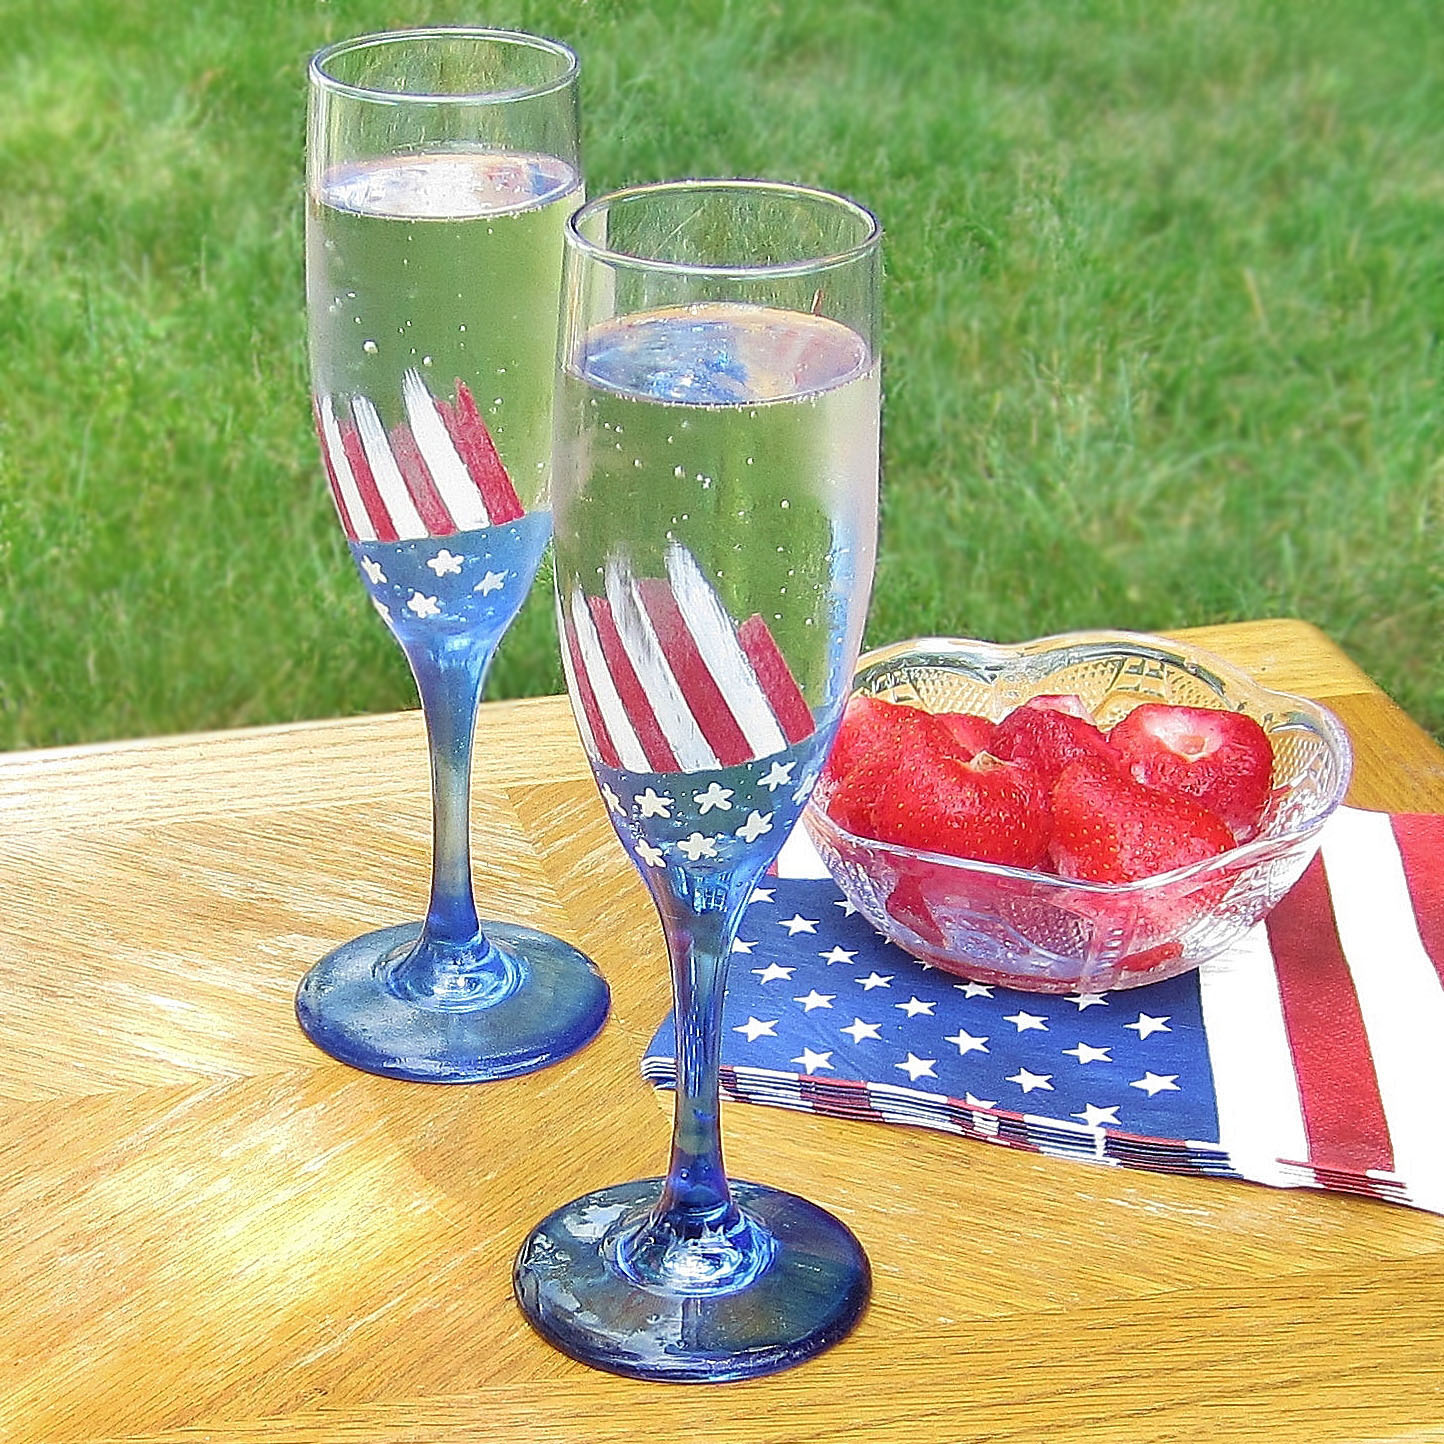 Image result for patriotic glassware and dishes